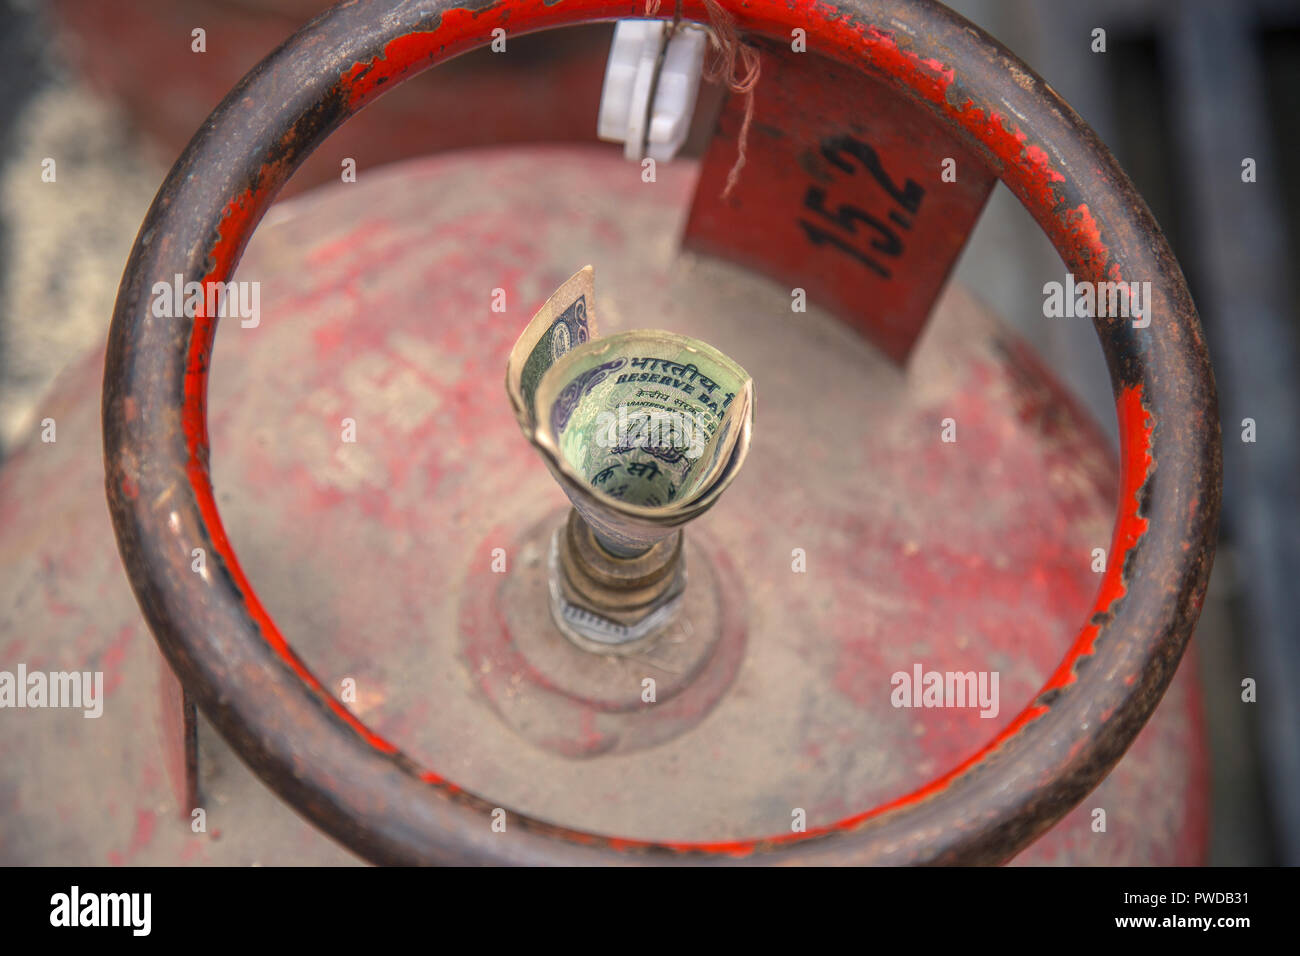 Price hike for LPG gas cylinder effects poor villagers so Indian government providing gas subsidy to poor people - Stock Image